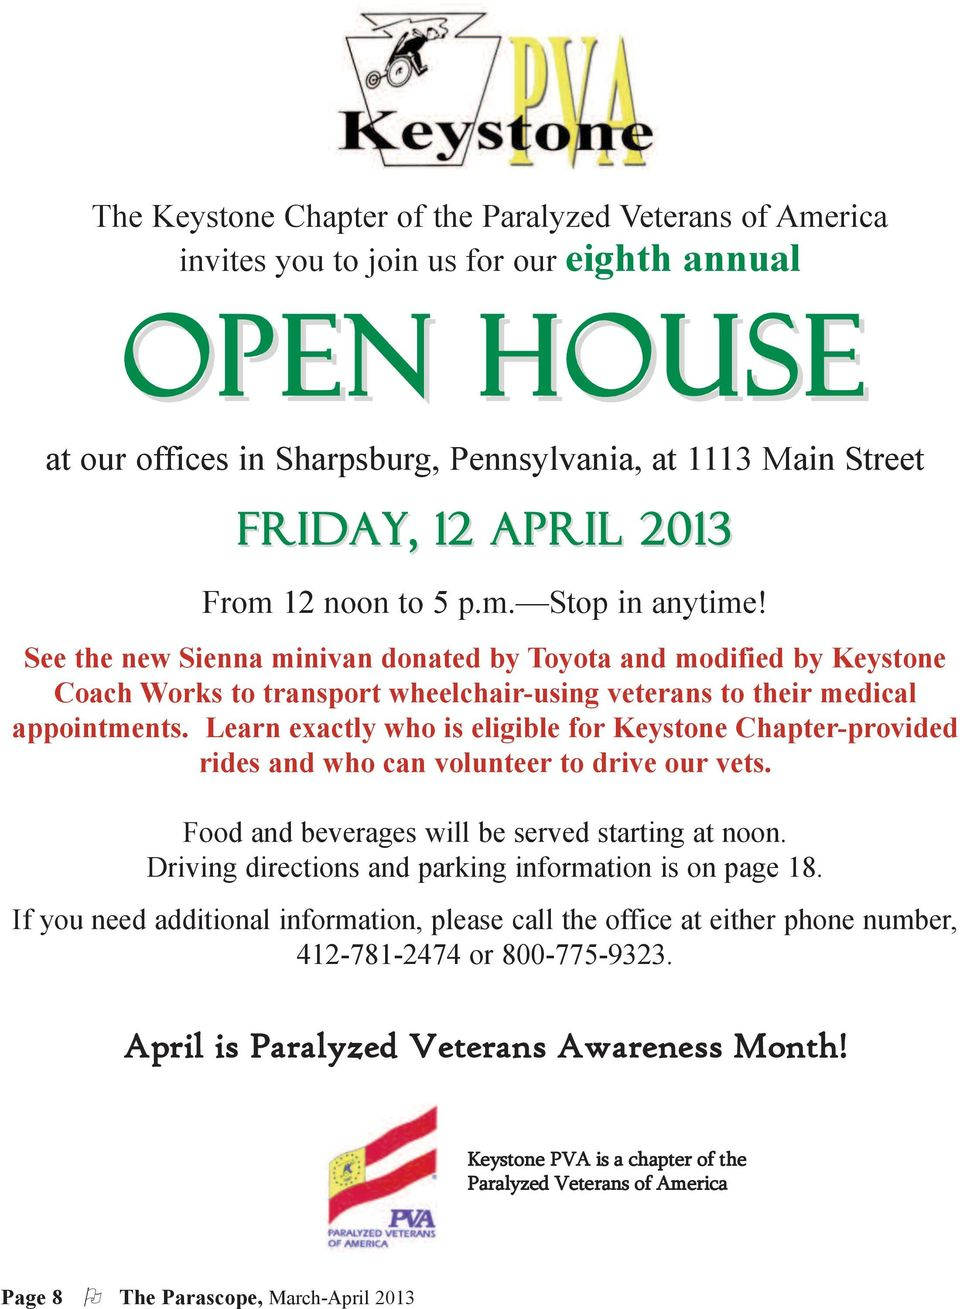 Learn exactly who is eligible for Keystone Chapter-provided rides and who can volunteer to drive our vets. Food and beverages will be served starting at noon.